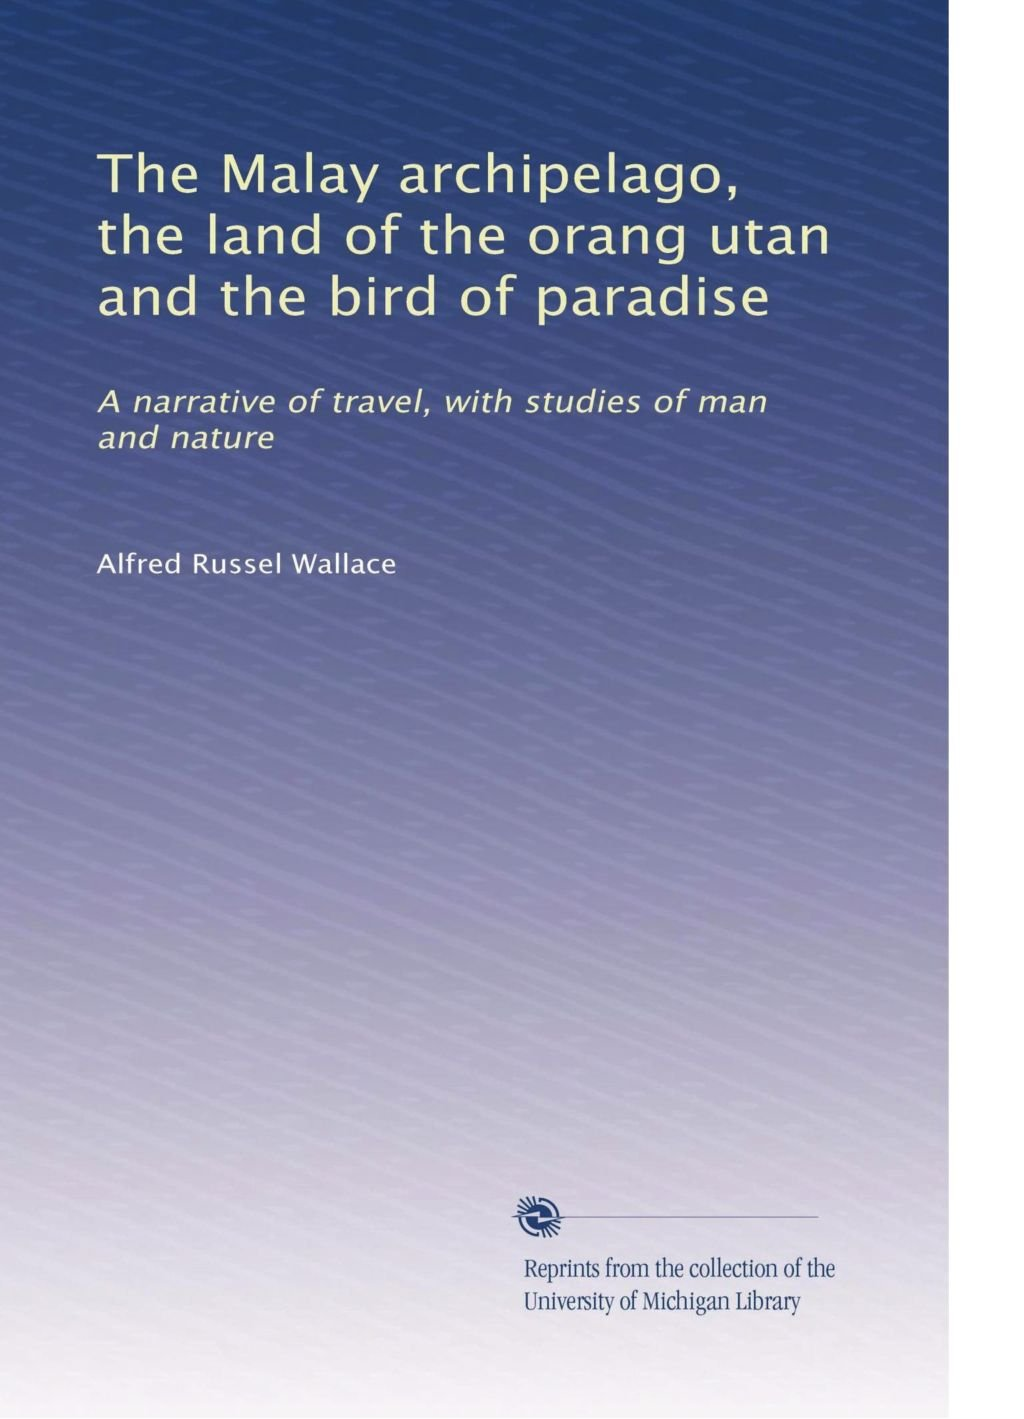 Download The Malay archipelago, the land of the orang utan and the bird of paradise: A narrative of travel, with studies of man and nature pdf epub